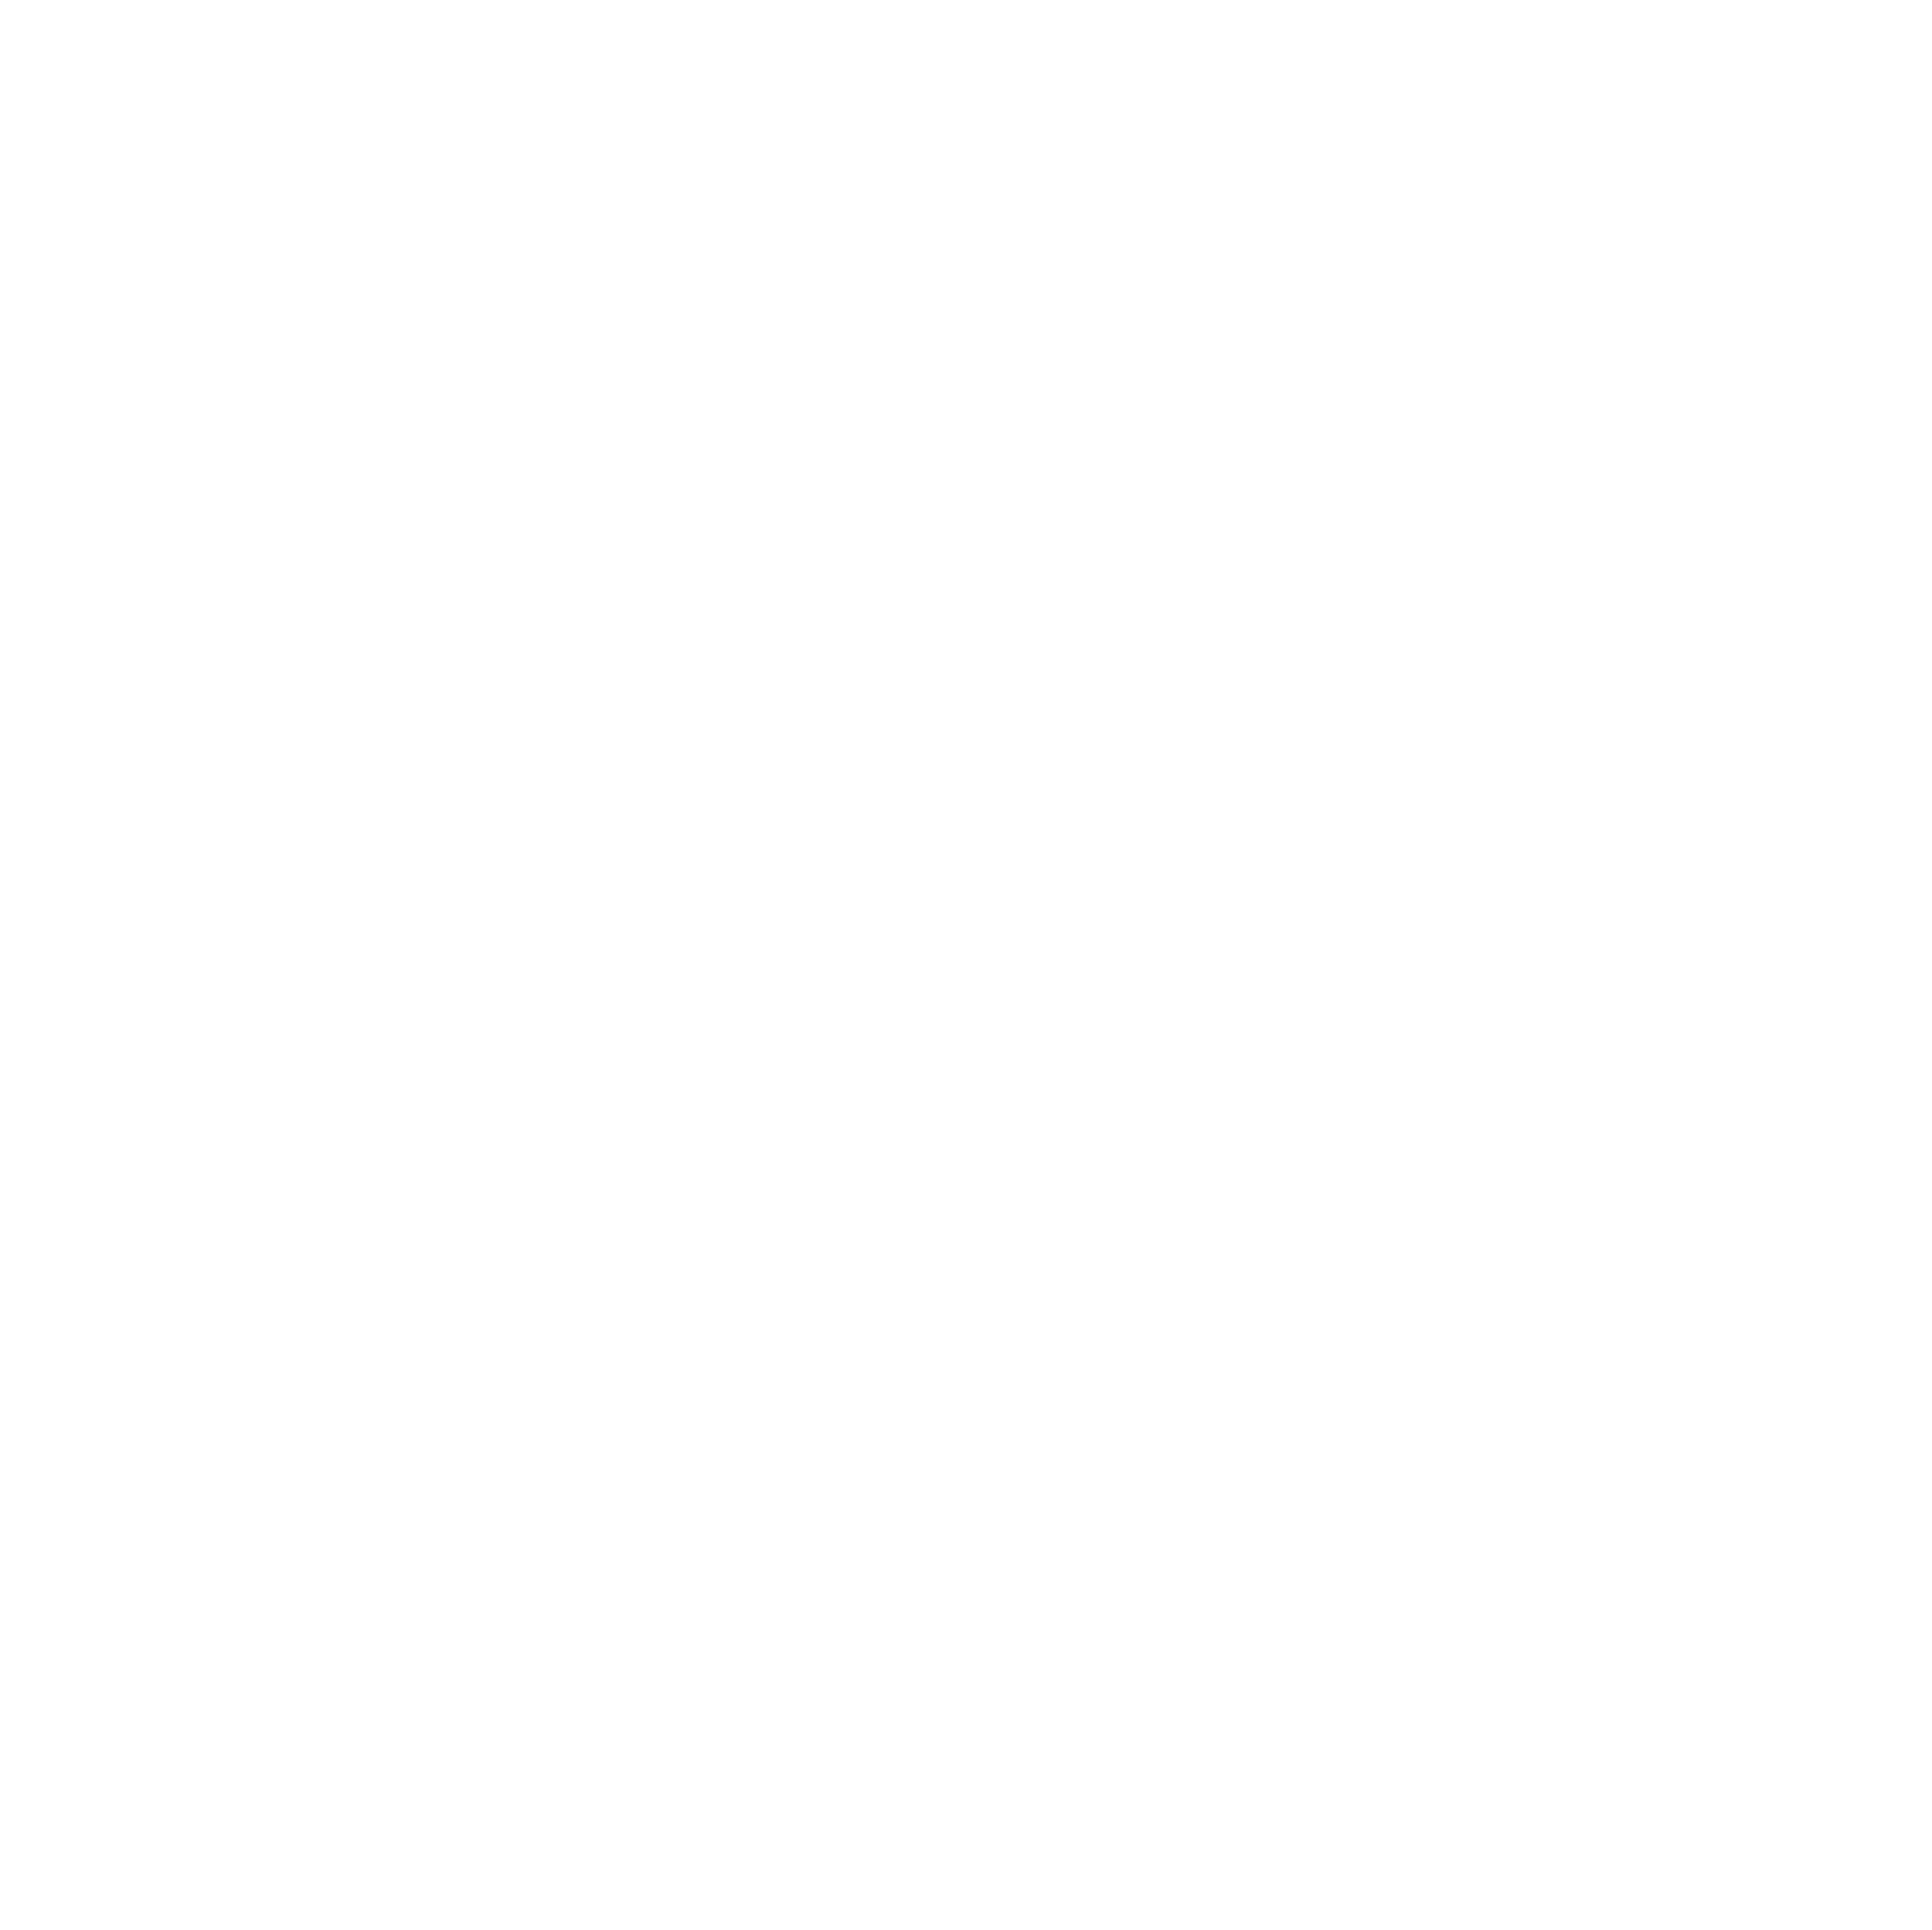 White outline png. Gear no icons free